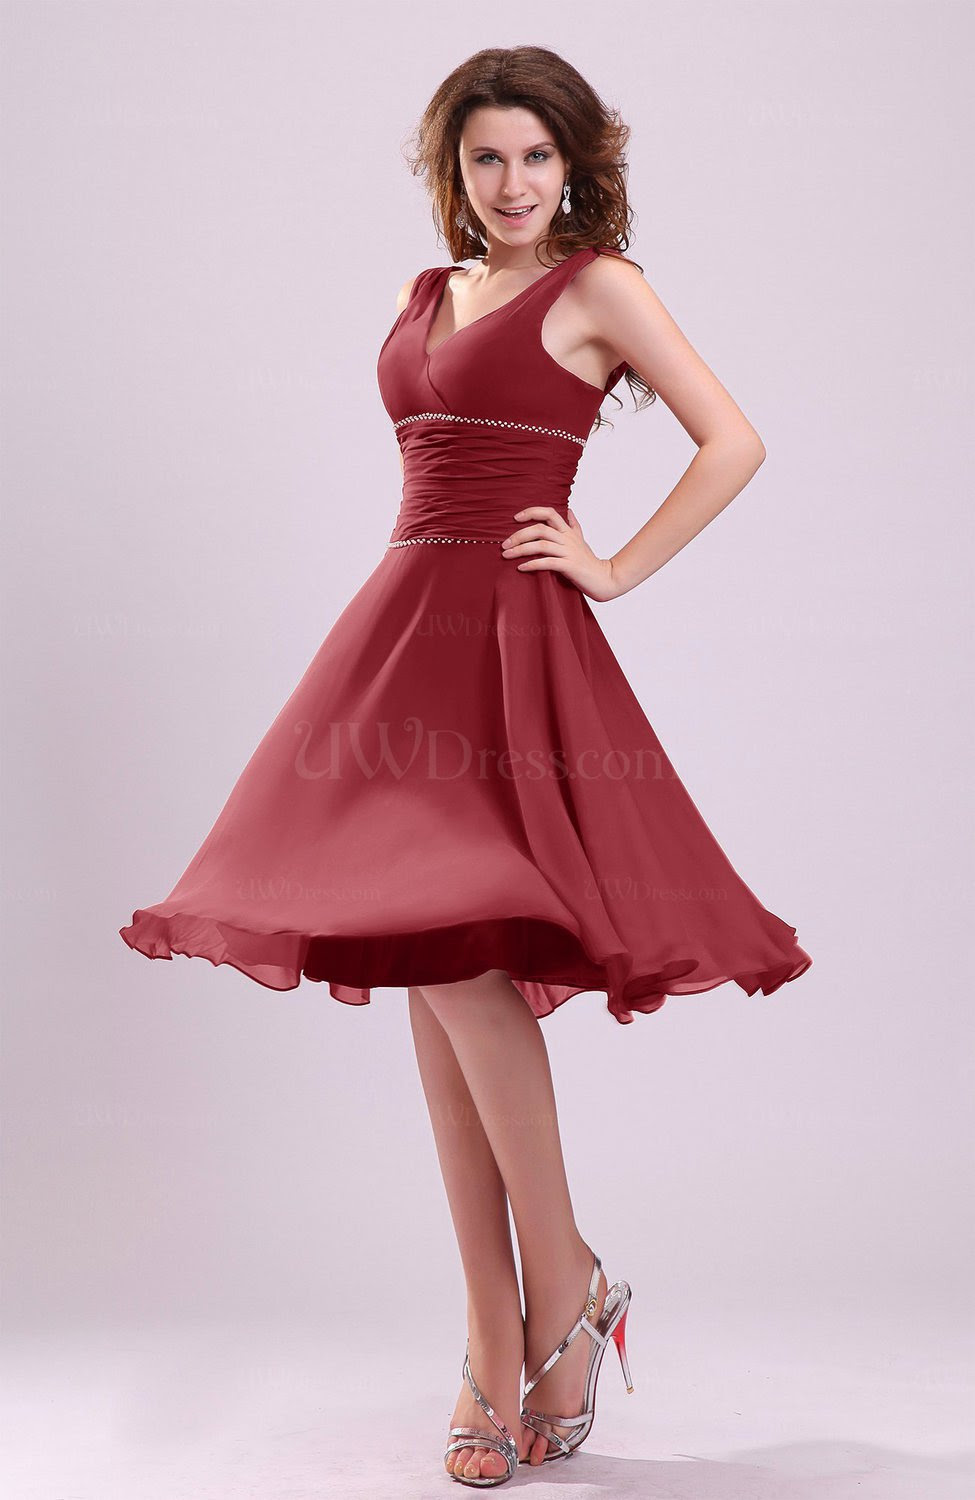 New Cheap Wedding Dresses: Red and black bridesmaid dresses under 100